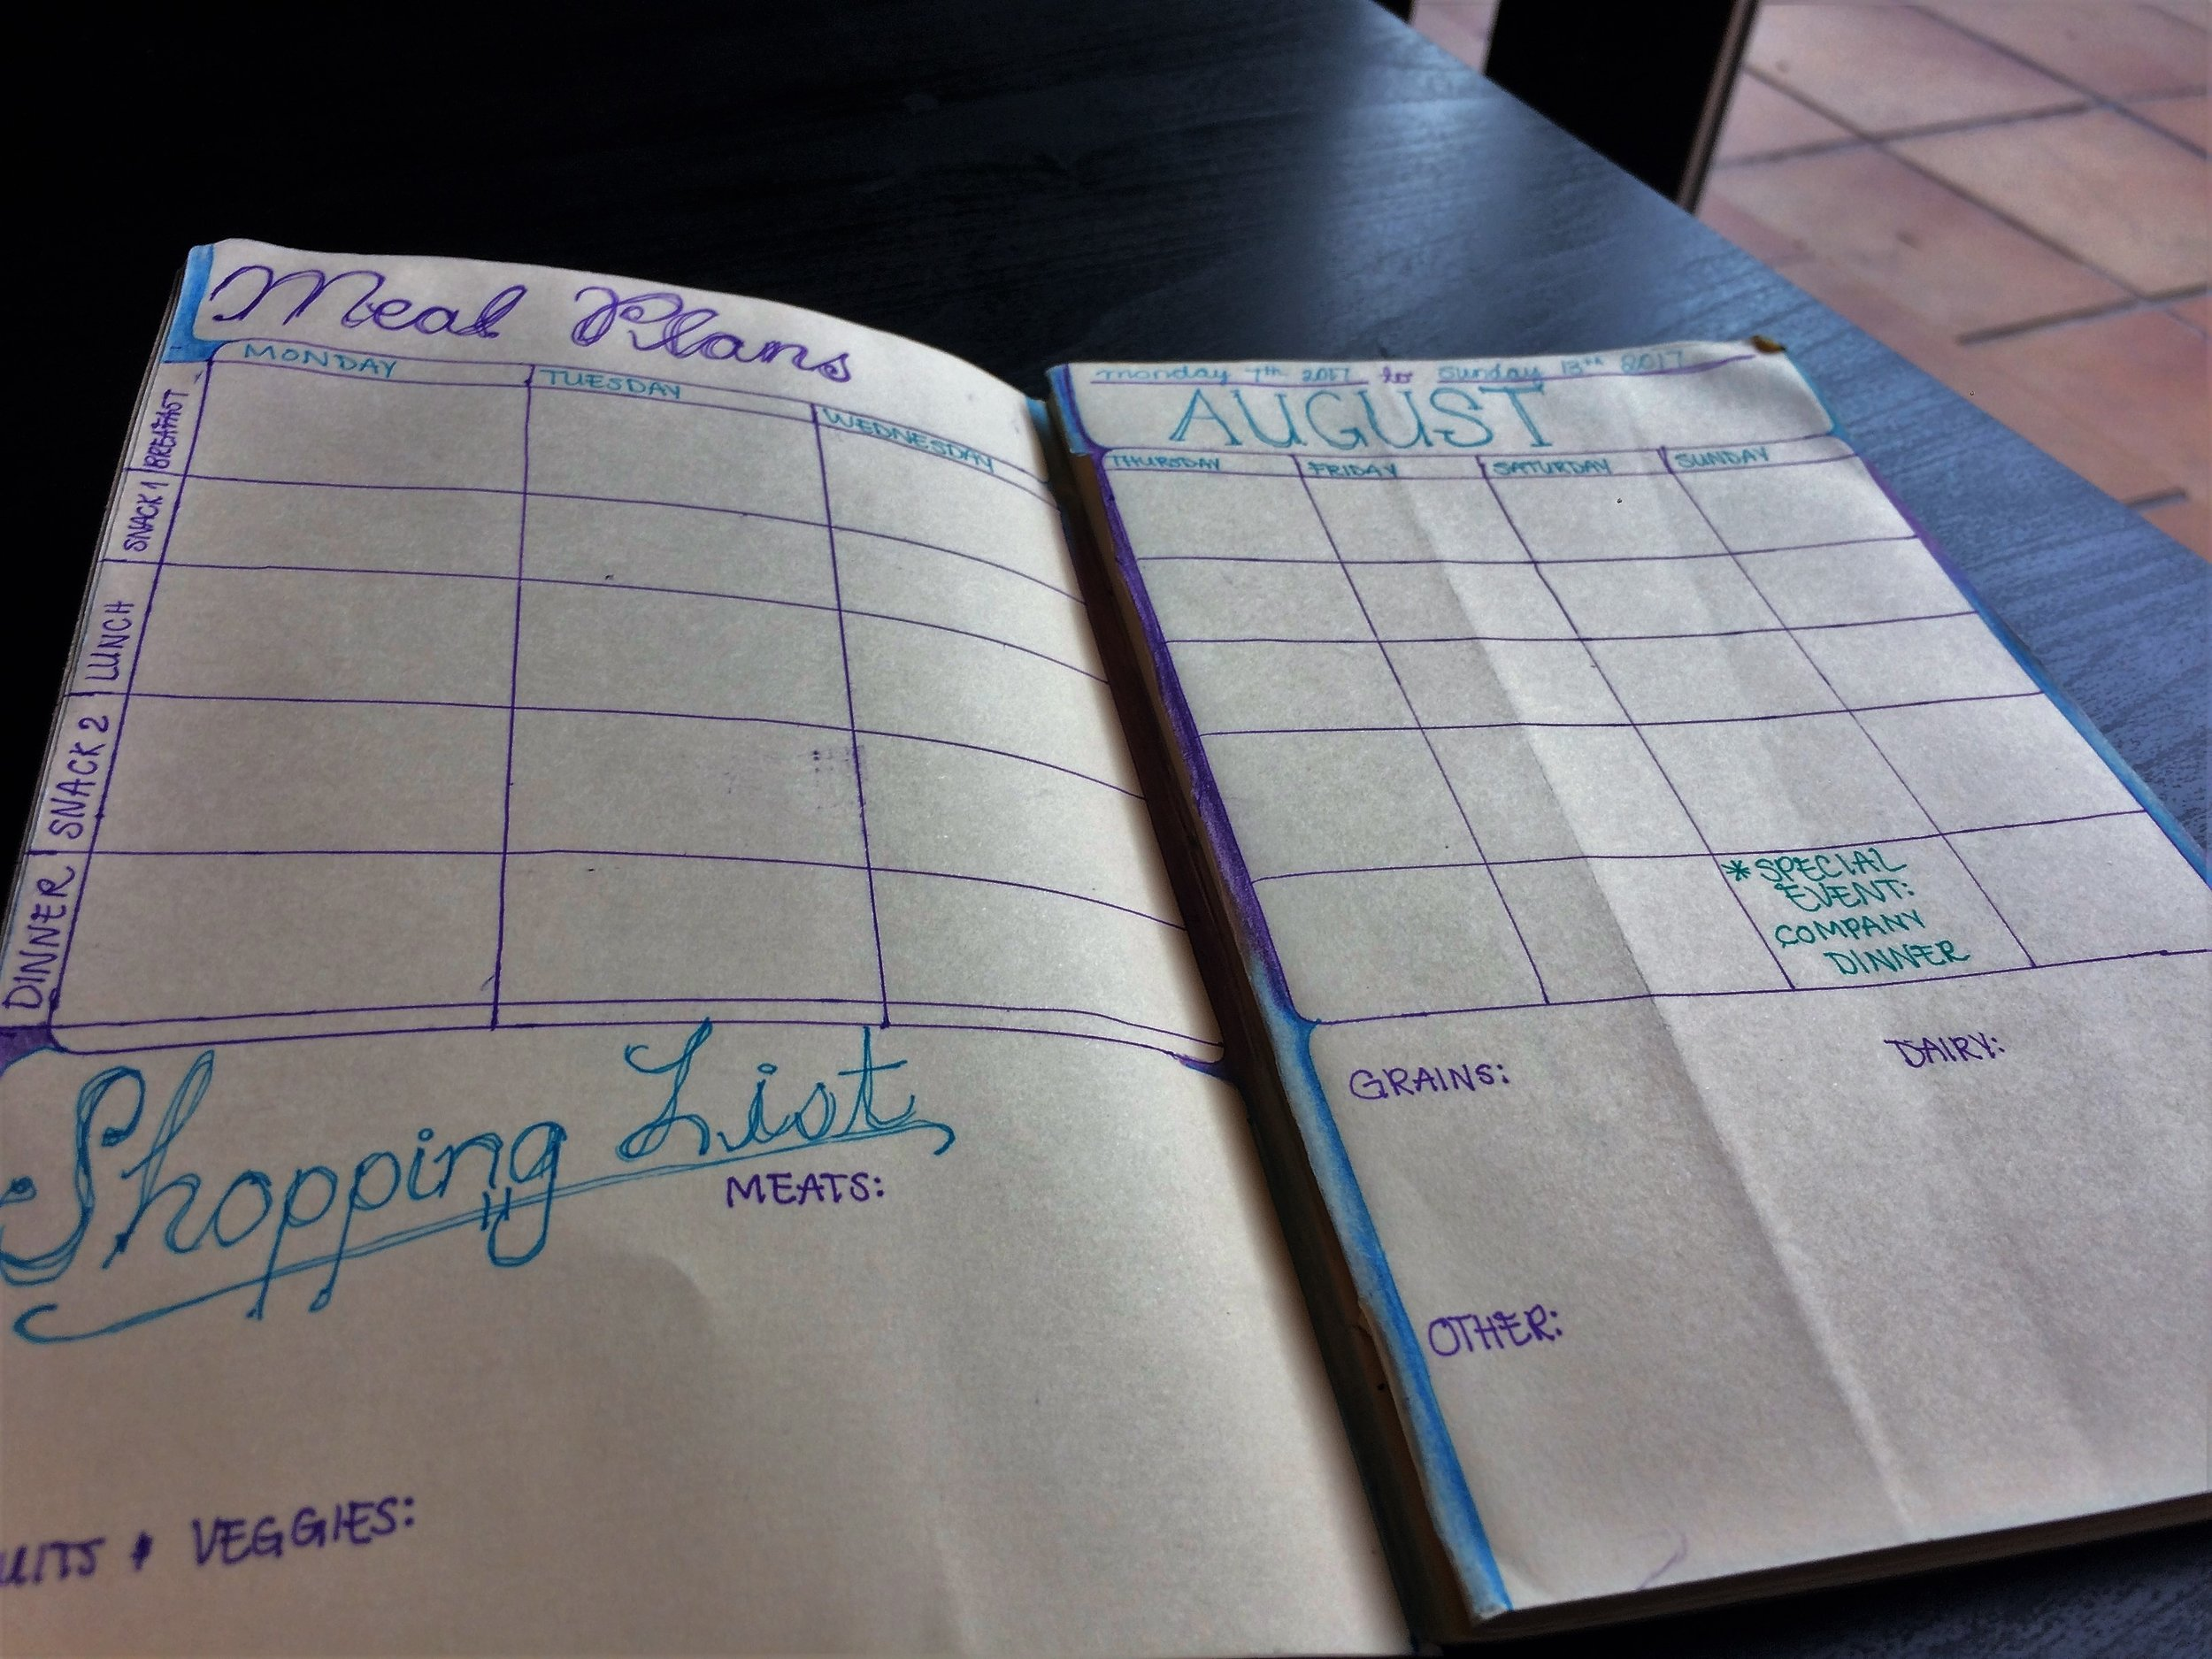 bullet journal health pages health and fitness tracker ideas food log inspiration goals doodles layout spread my life track how to start a diy pages 1